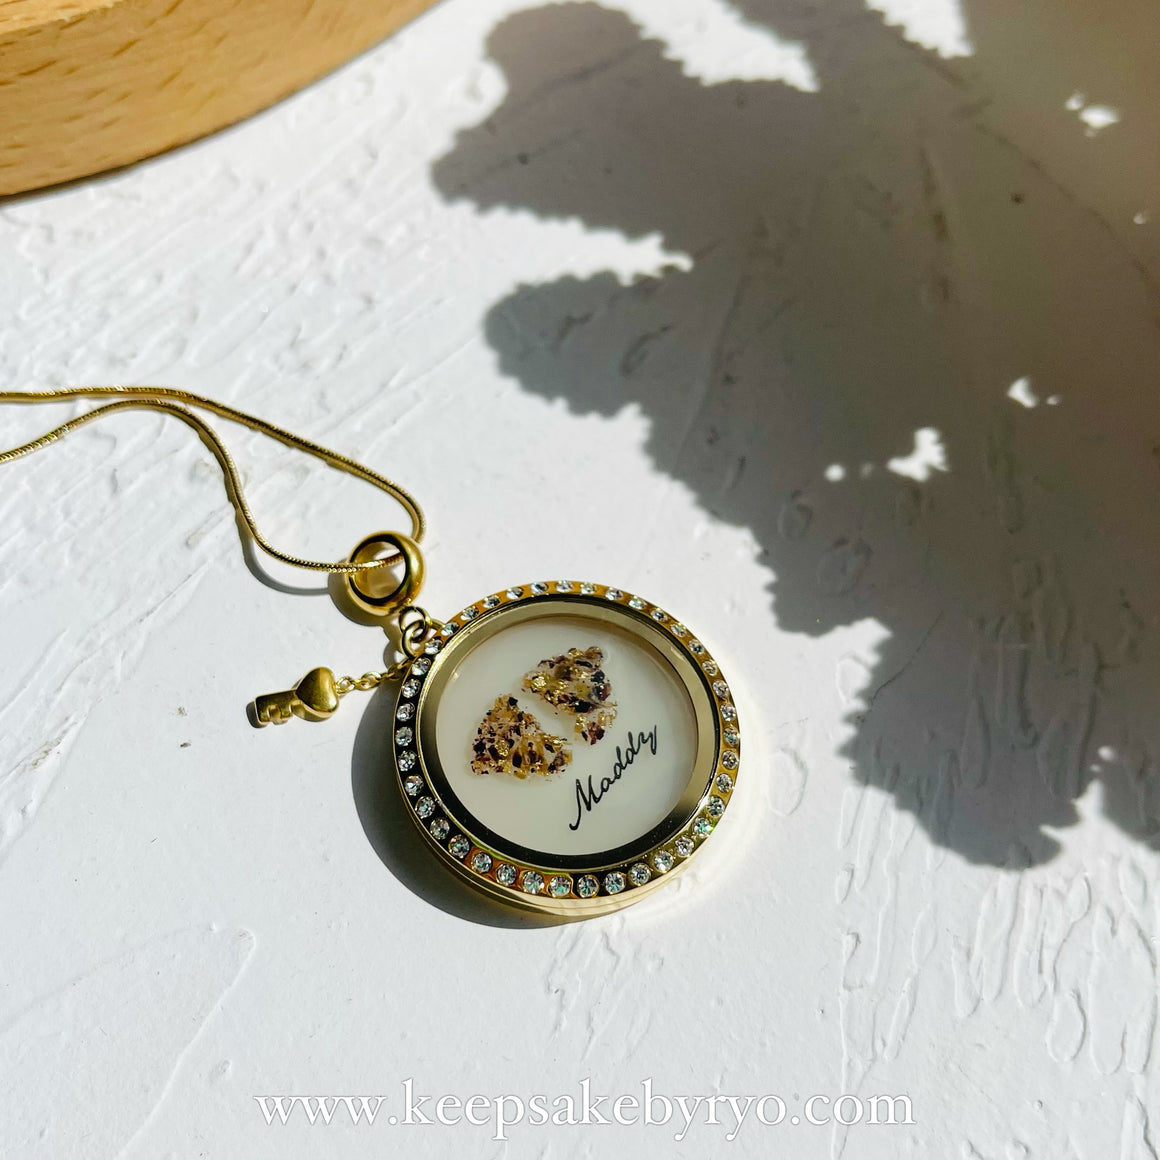 UMBILICAL CORD BABY FEET GLASS LOCKET